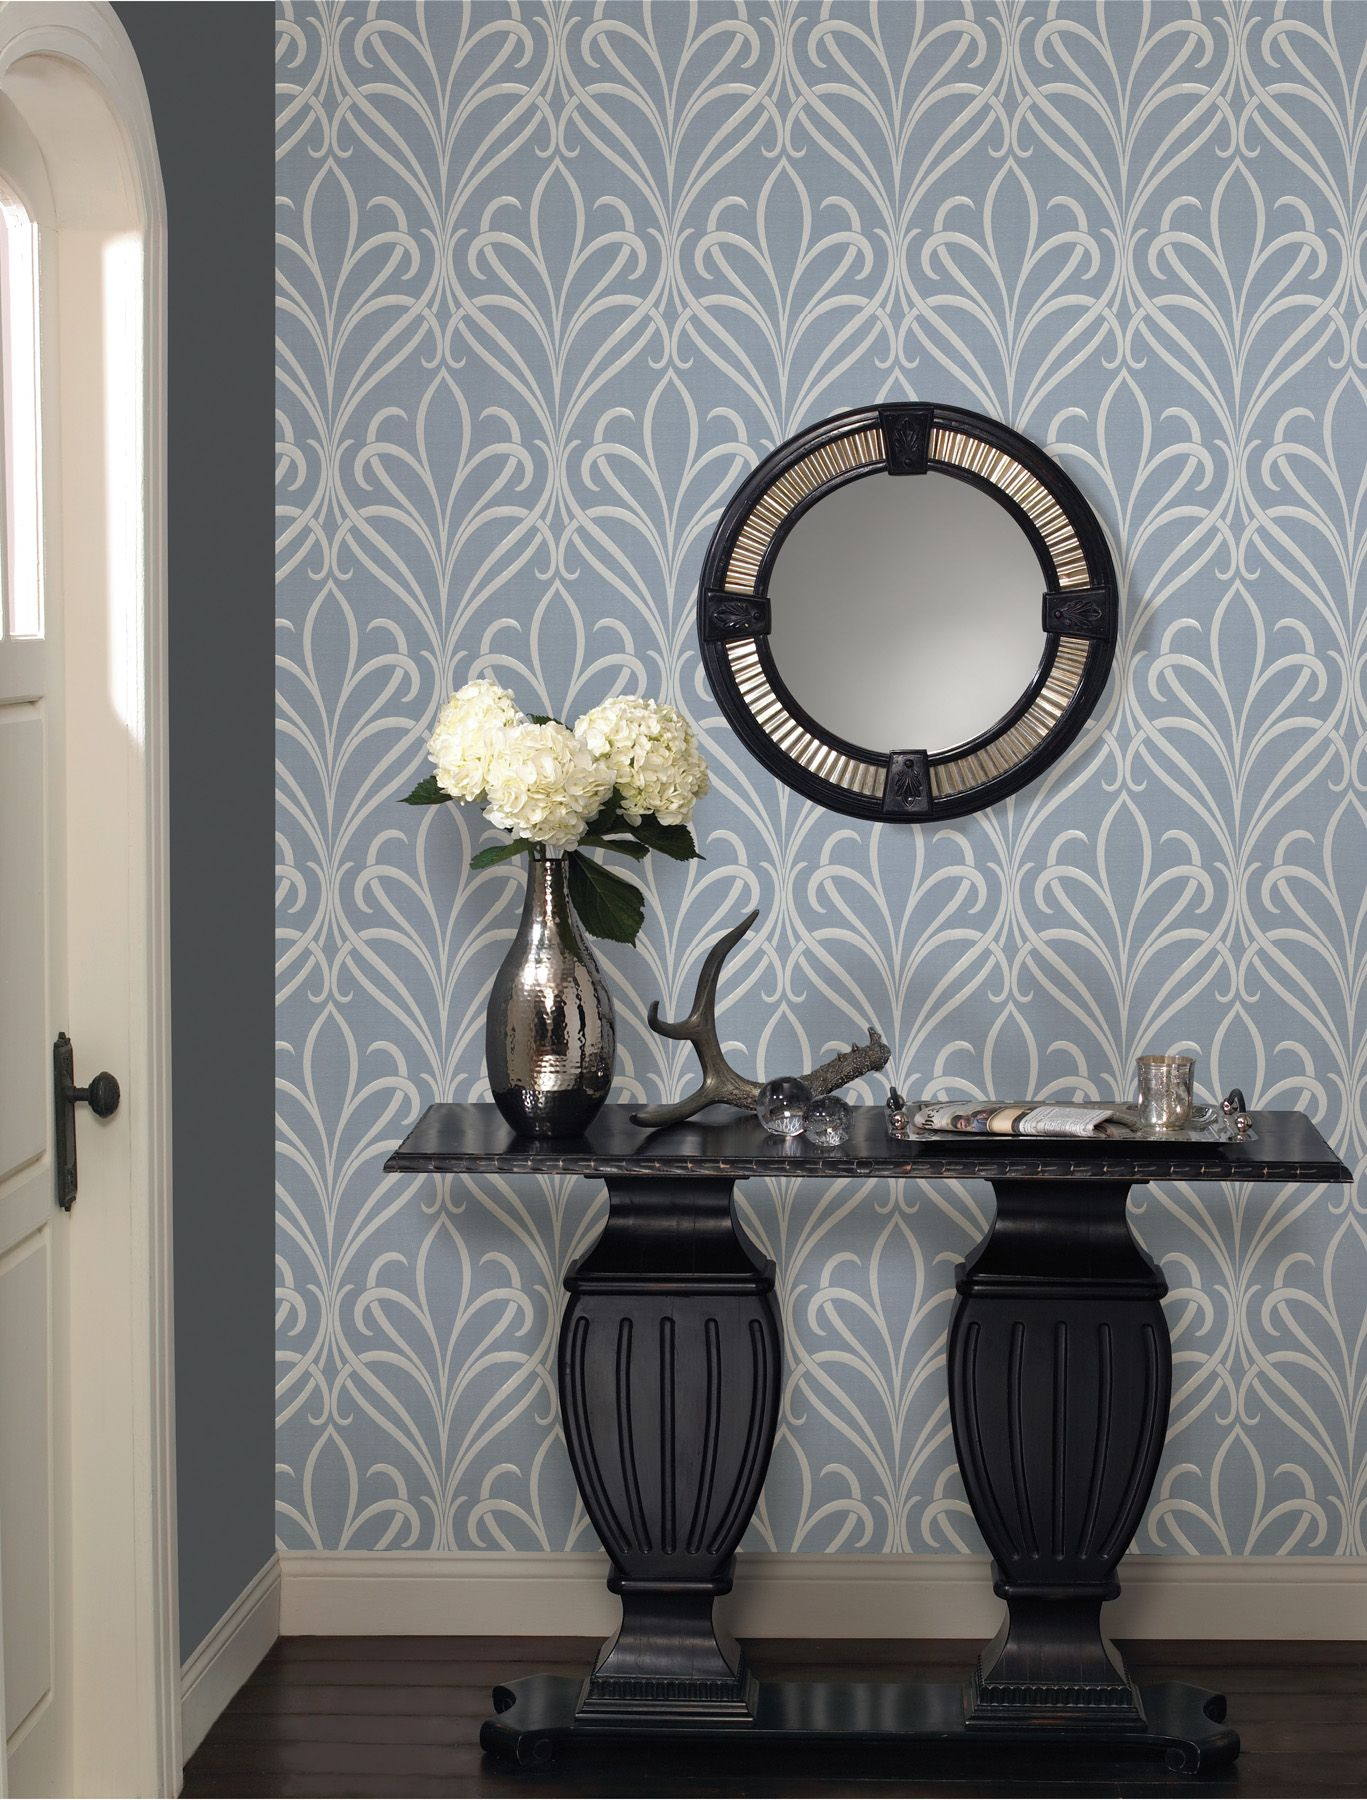 Living Room Feature Wall Designs: Ultra Pretty Blue And White Nouveau Damask Wallpaper